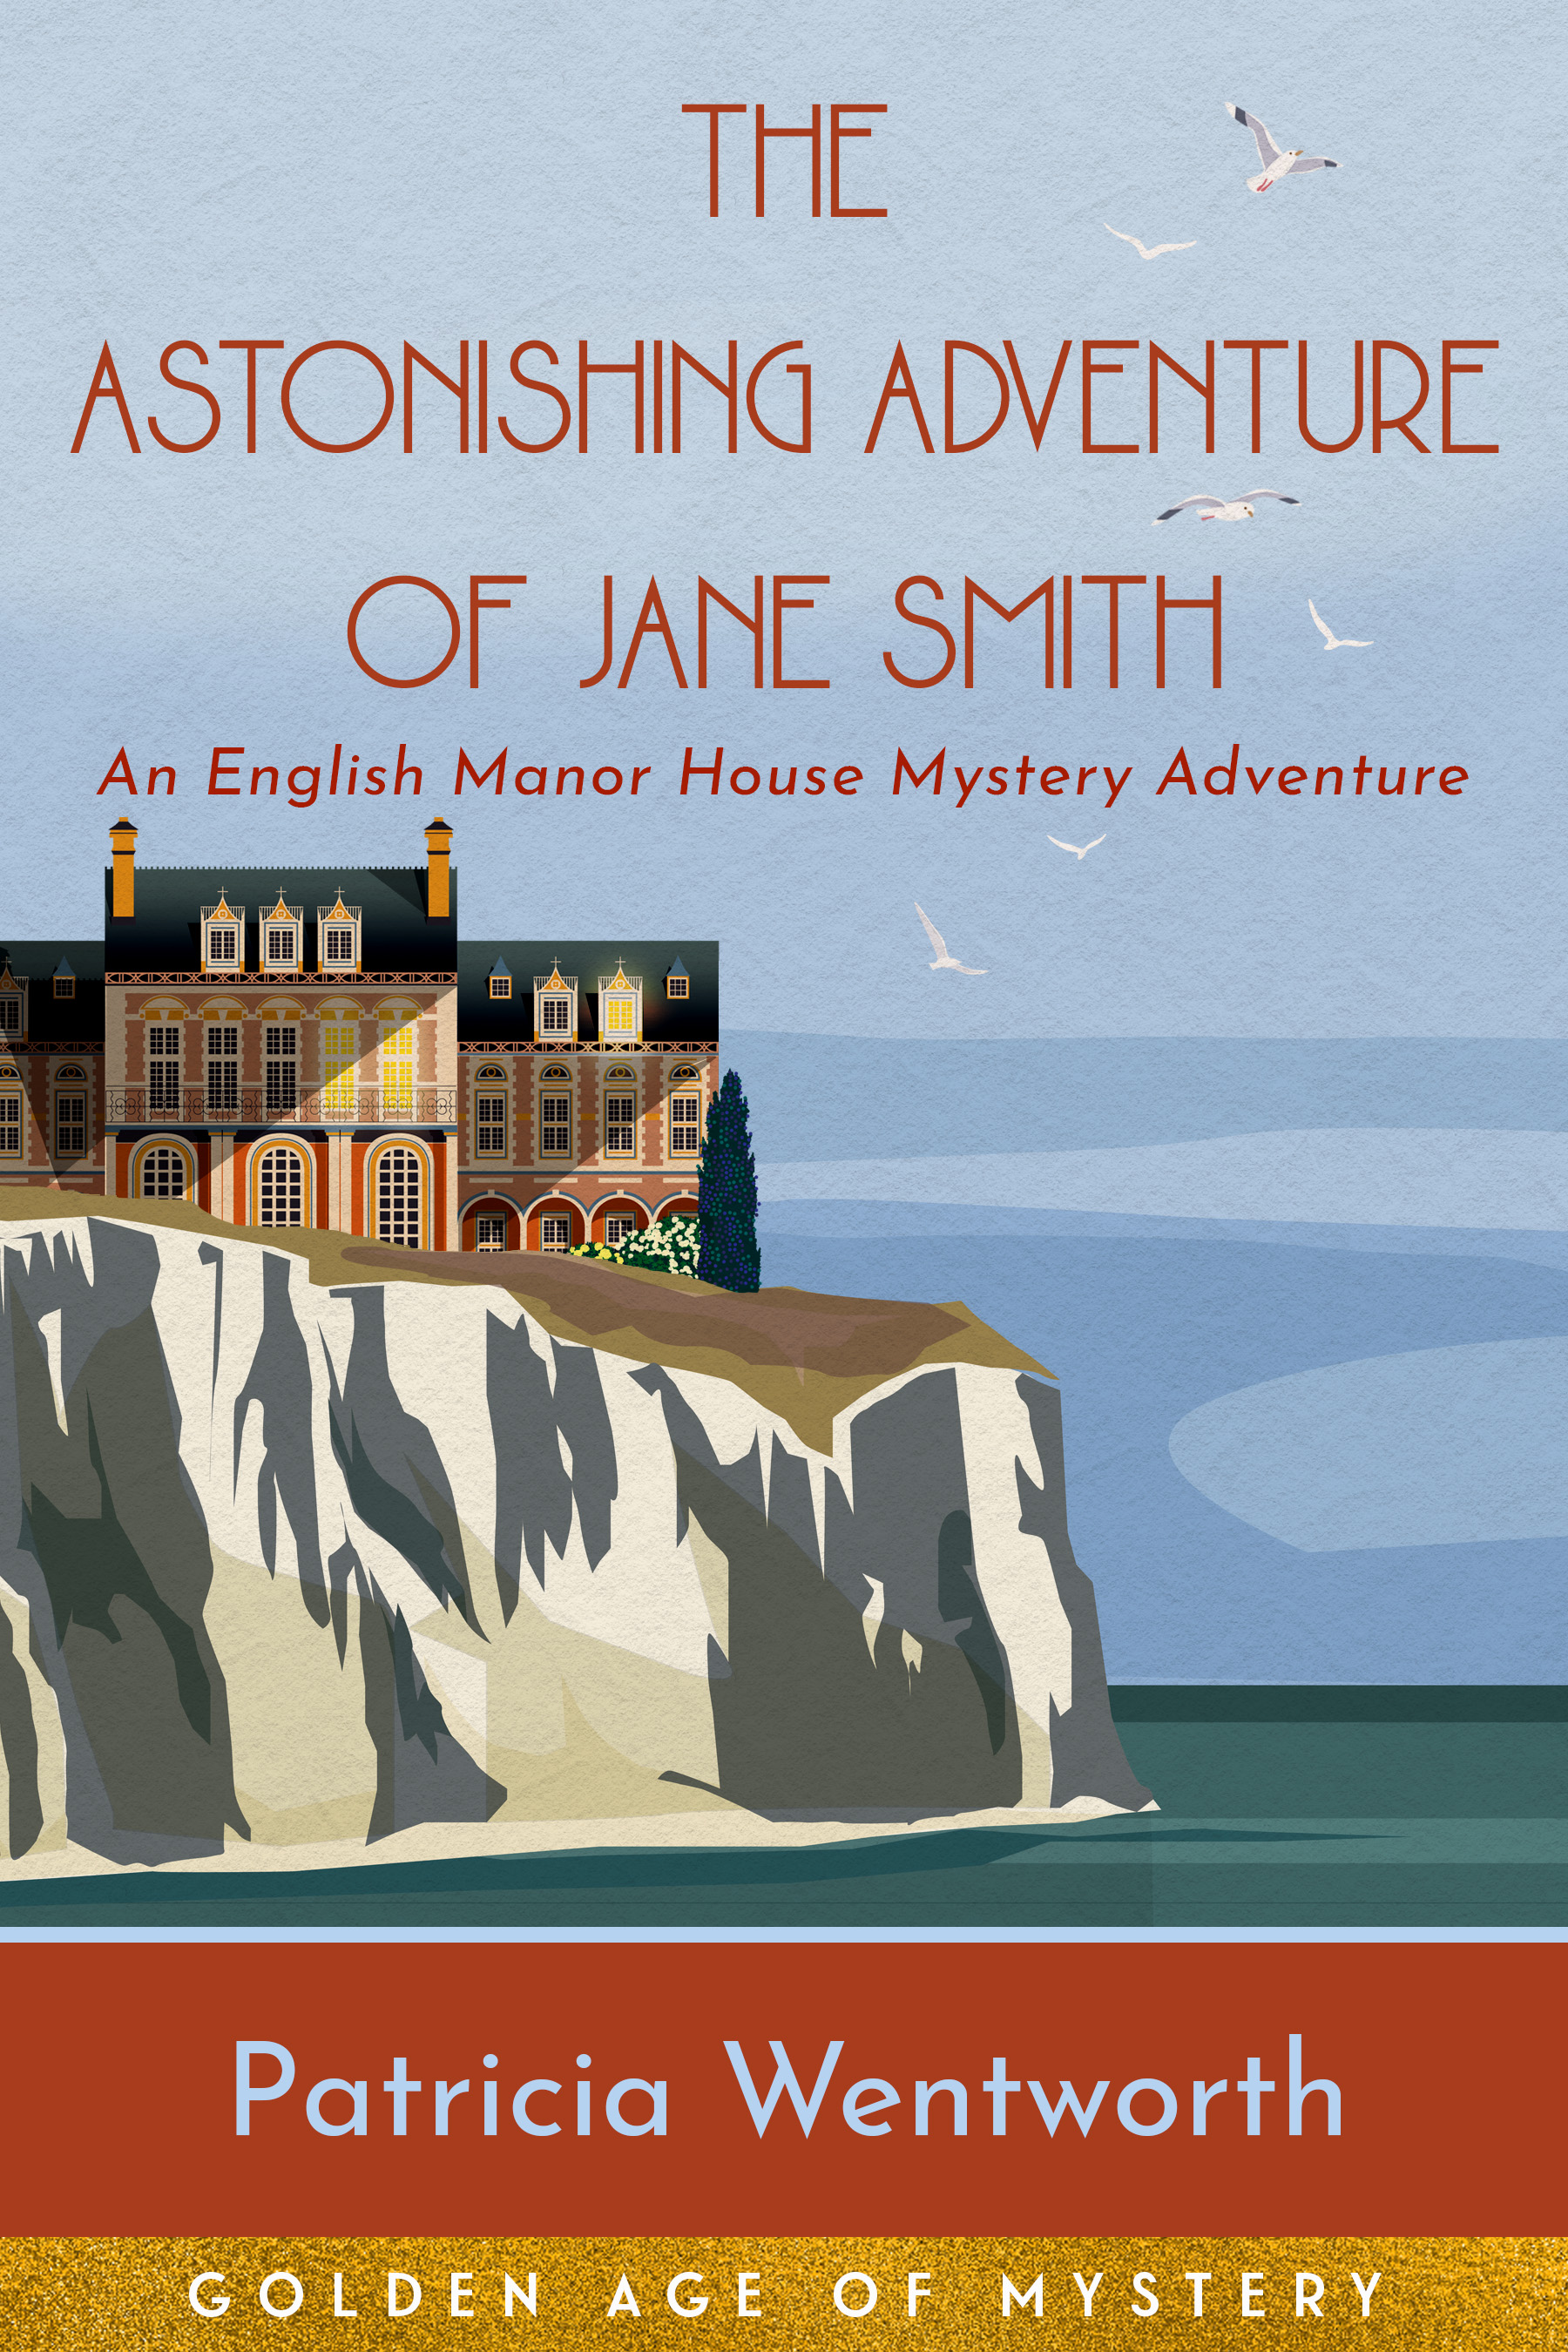 The Astonishing Adventure of Jane Smith: An English Manor House Mystery Adventure (Golden Age of Mystery) Patricia Wentworth Book Cover